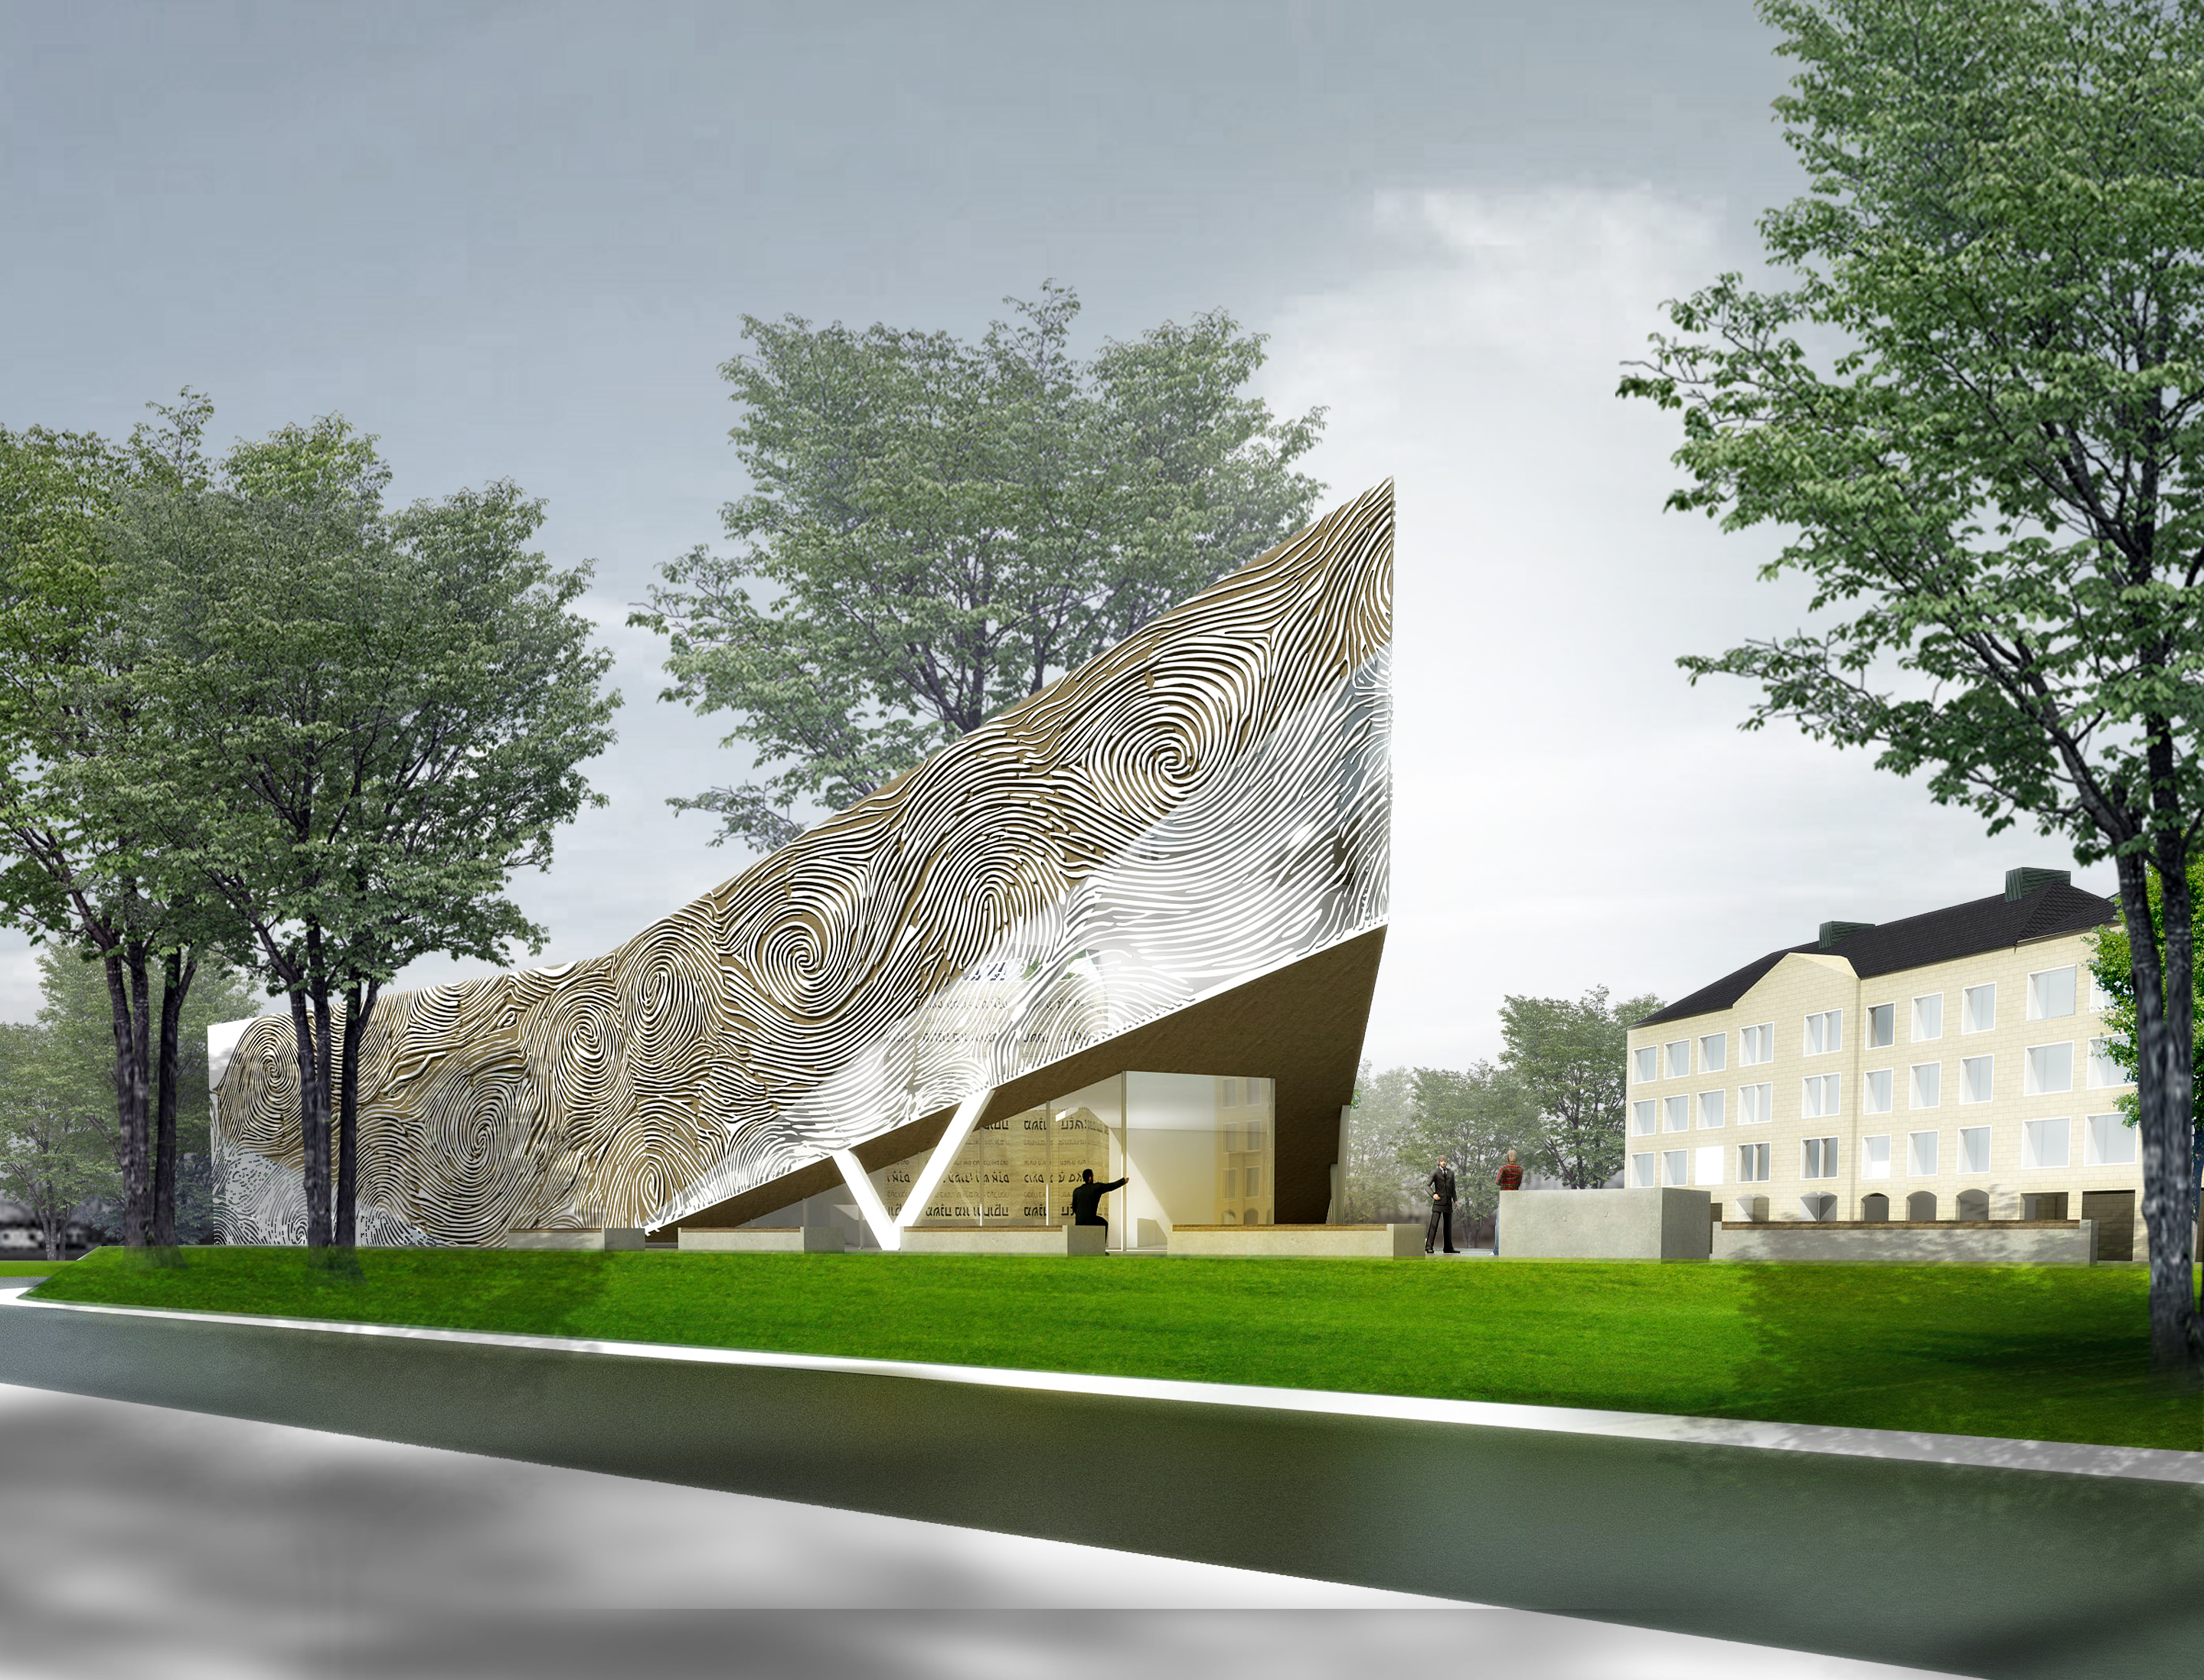 Herrmanns Architekten Presenting the Concept of a New Synagogue in Koblenz in Germany homesthetics (4)